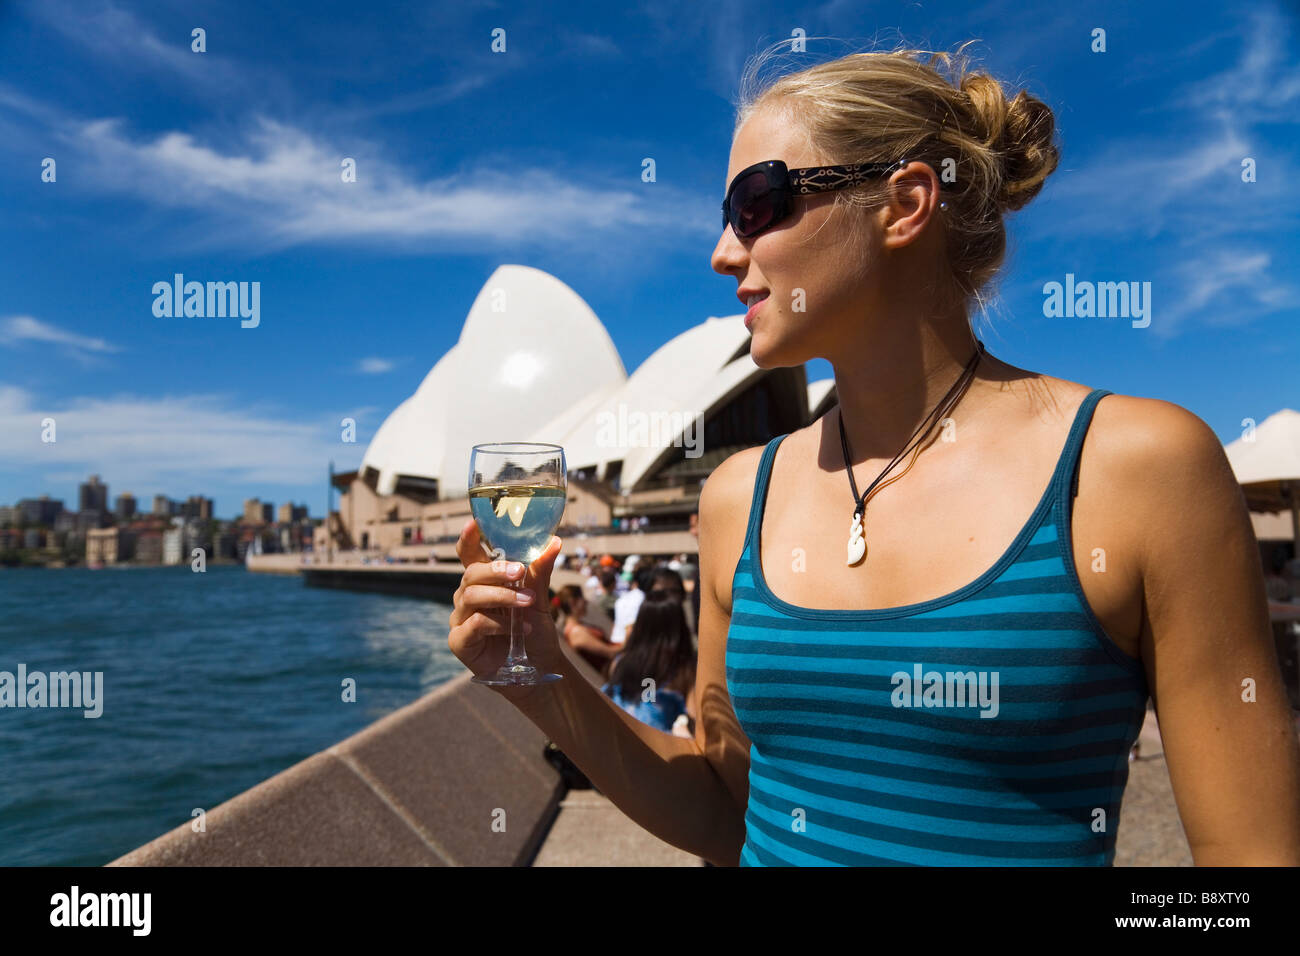 A woman enjoys a drink at the Opera Bar on Sydney harbour.  Sydney, New South Wales, AUSTRALIA - Stock Image